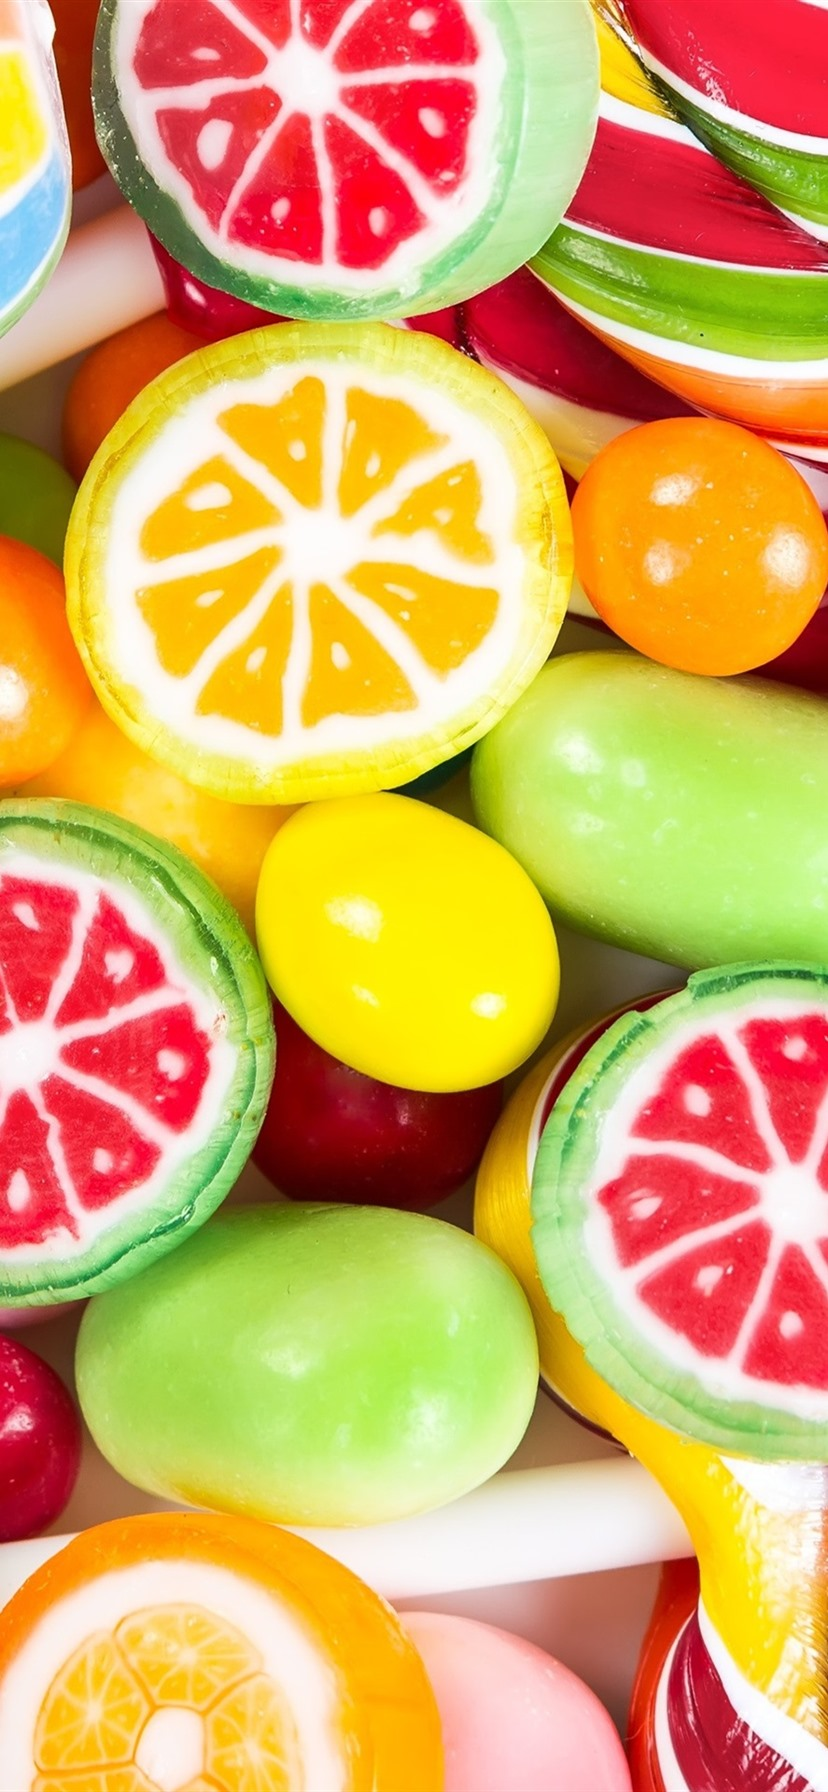 Colorful Food Wallpaper Free Download: Wallpaper Colorful Candy, Lollipops, Sweet Food 3840x2160